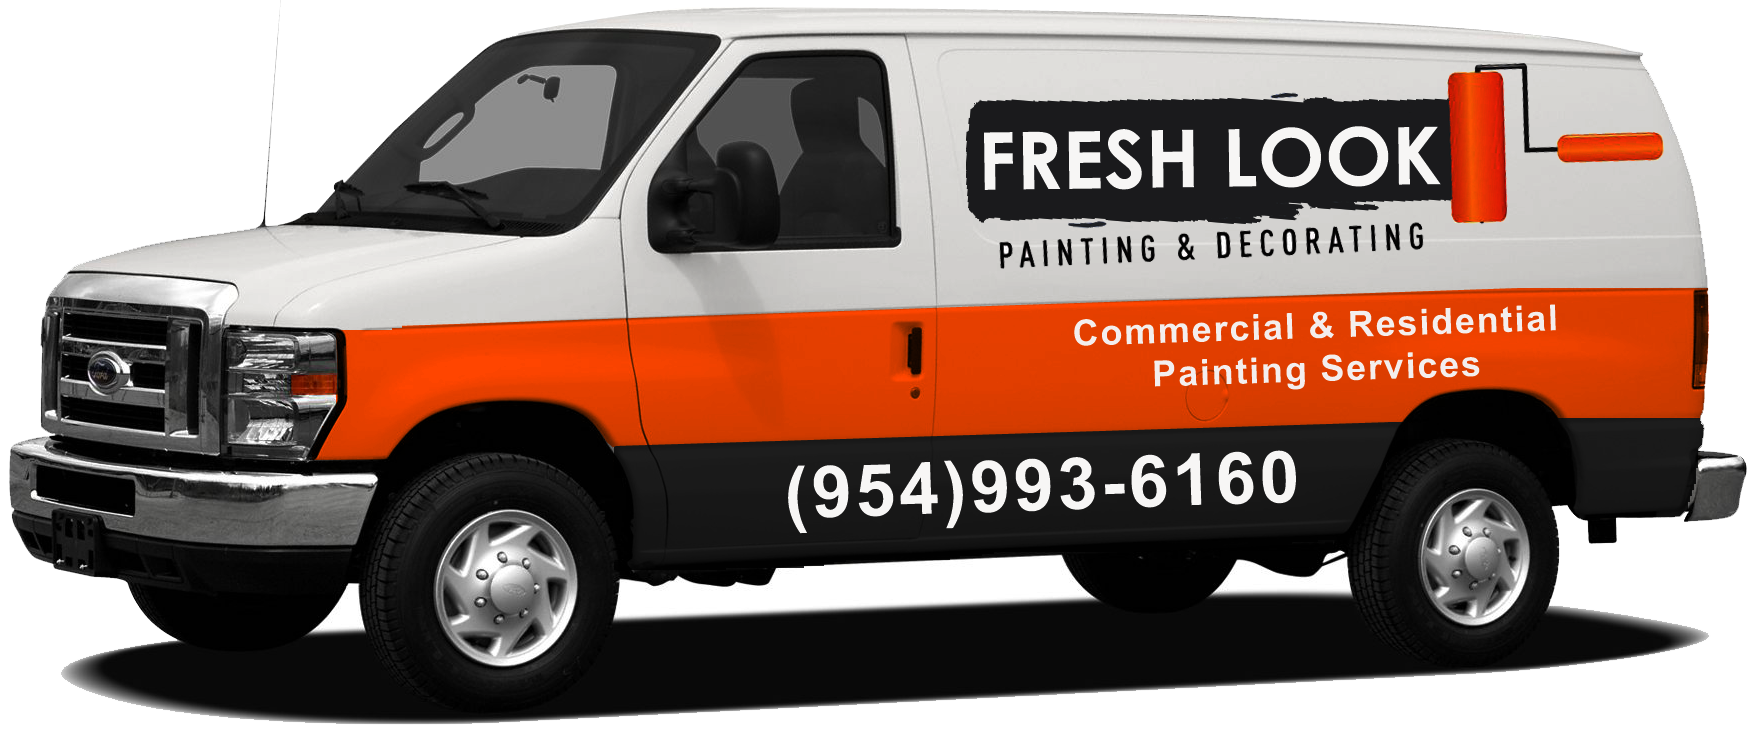 Commercial & Residential Painting Contractor